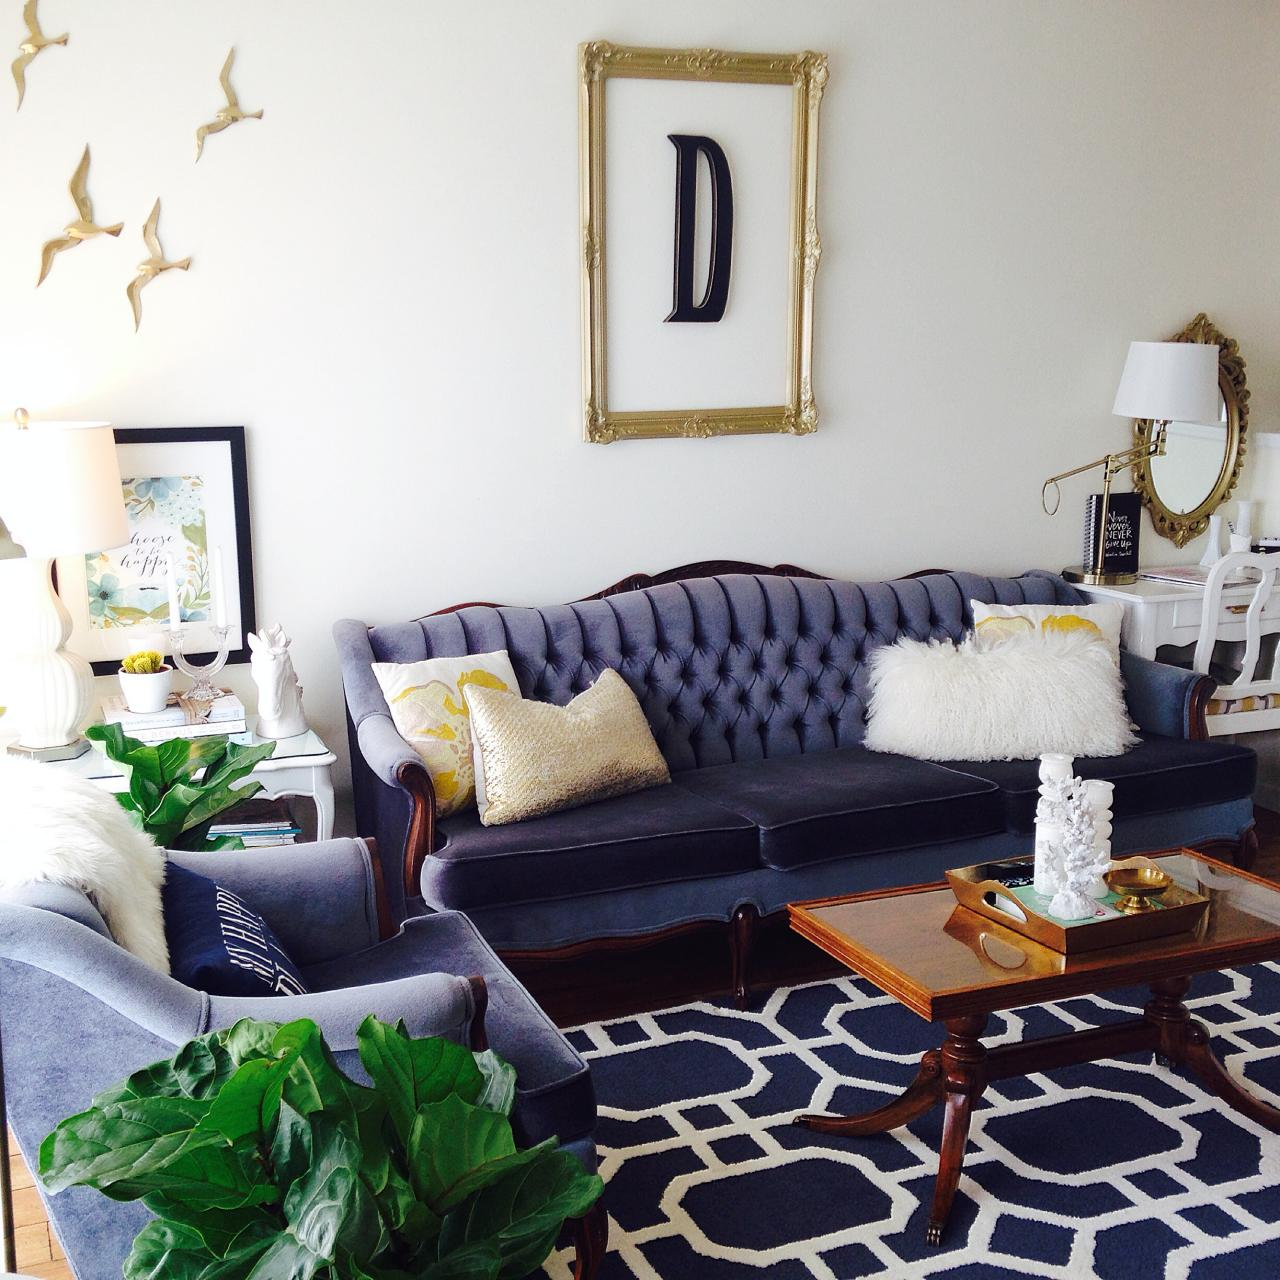 Green and yellow living room - Cool Down Your Design With Blue Velvet Furniture Hgtv S Decorating Design Blog Hgtv